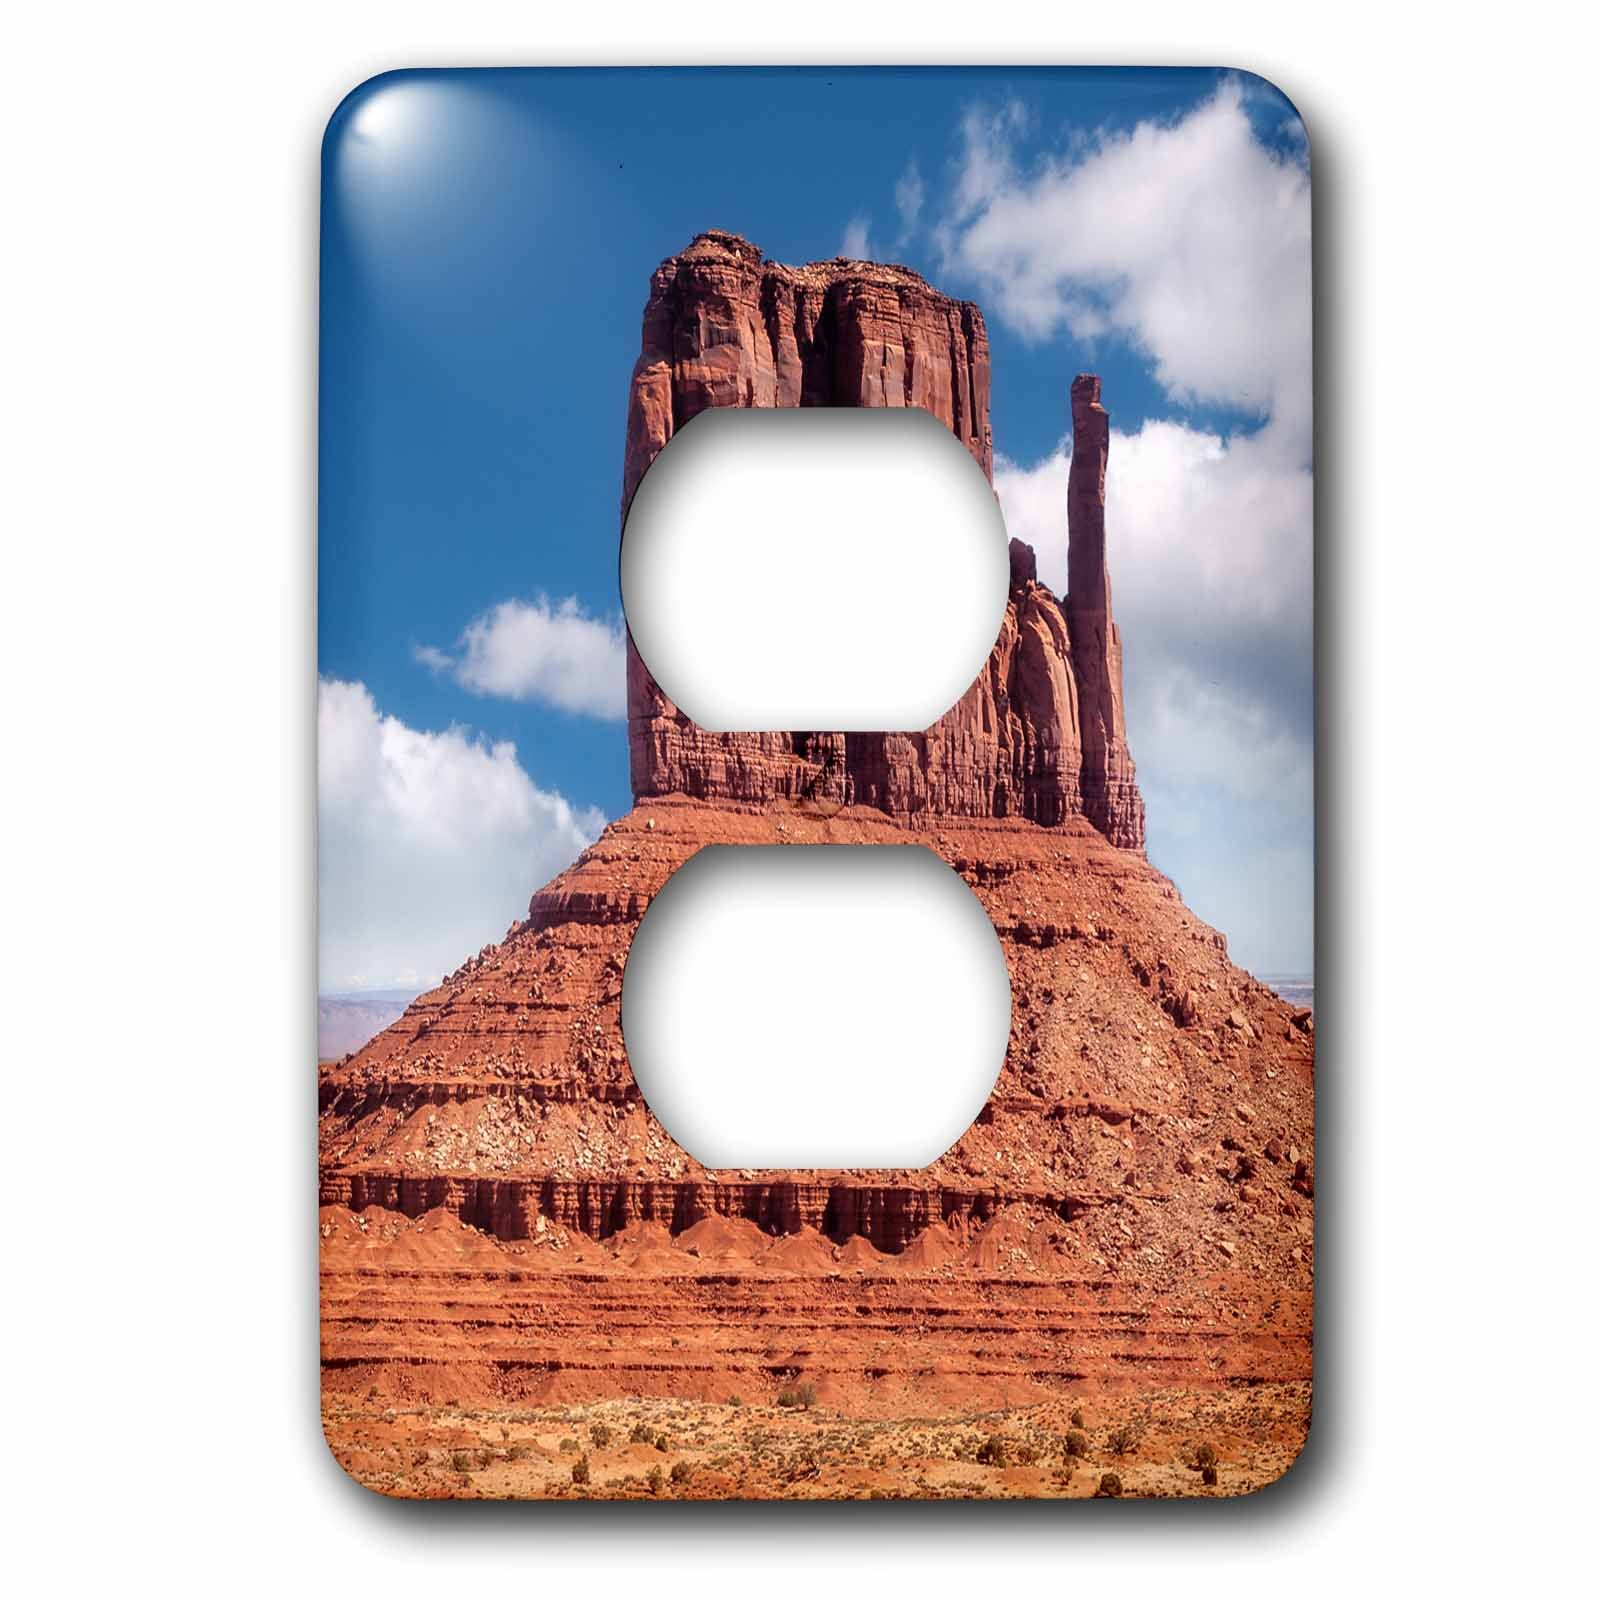 3dRose DanielaPhotography - Landscape, Nature - East Mitten Butte in Monument Valley, Navajo Tribal Park, Utah, USA - Light Switch Covers - 2 plug outlet cover (lsp_282009_6)